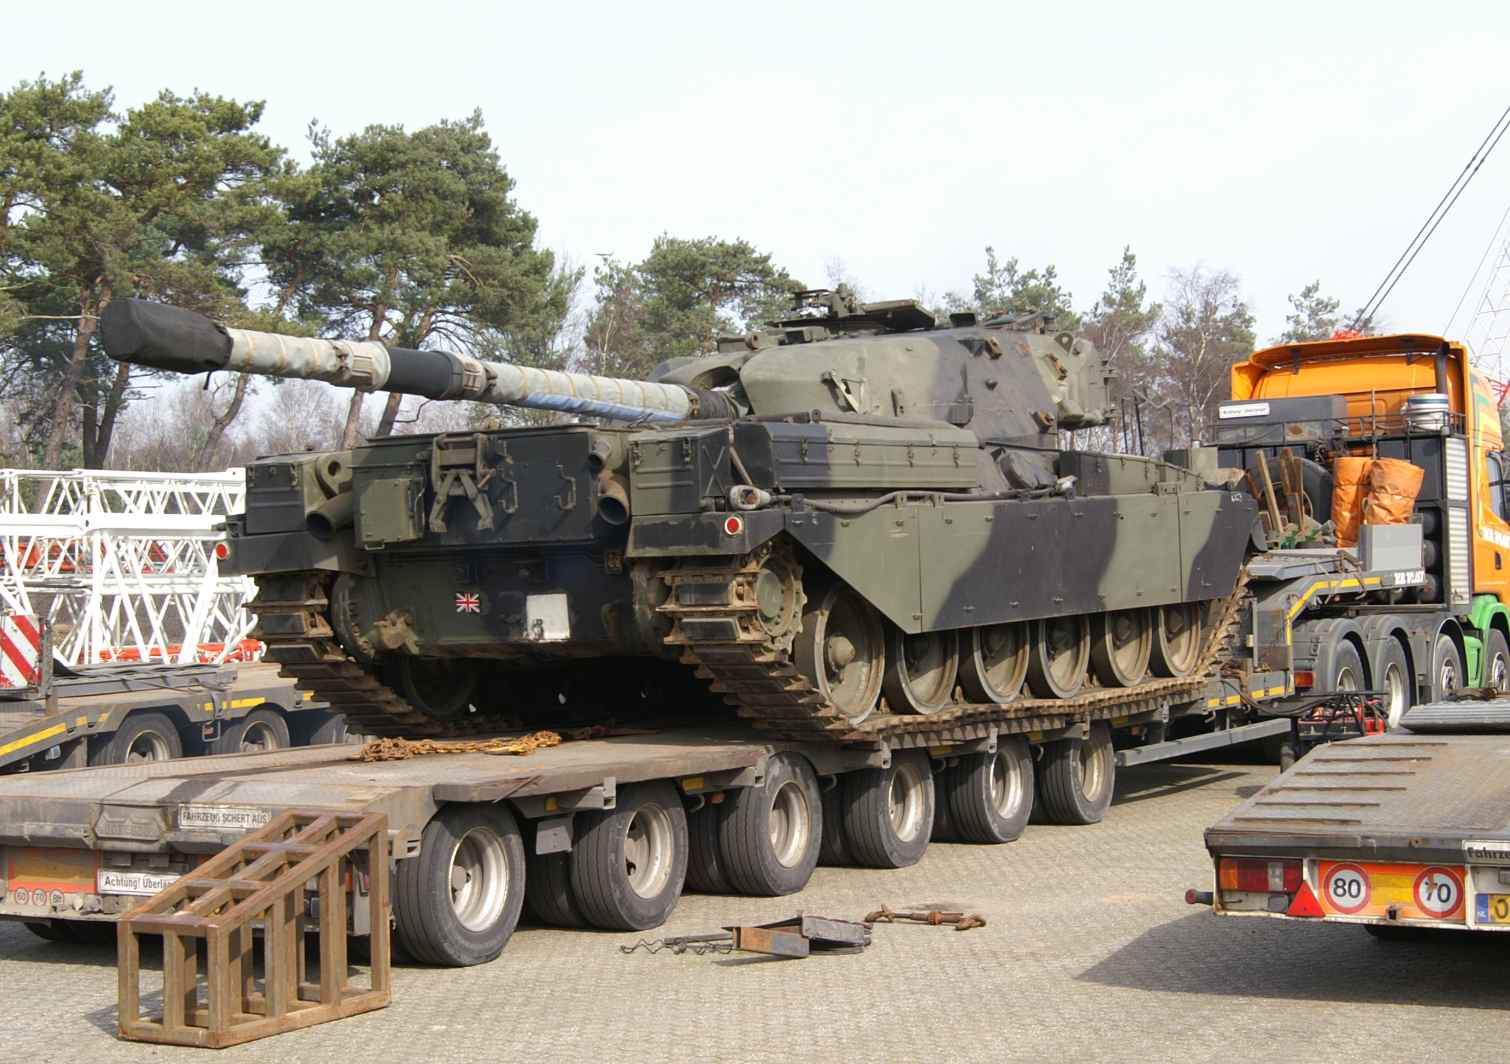 Military Tanks For Sale >> Top 10 Military Tanks For Sale To Civilians Military Machine